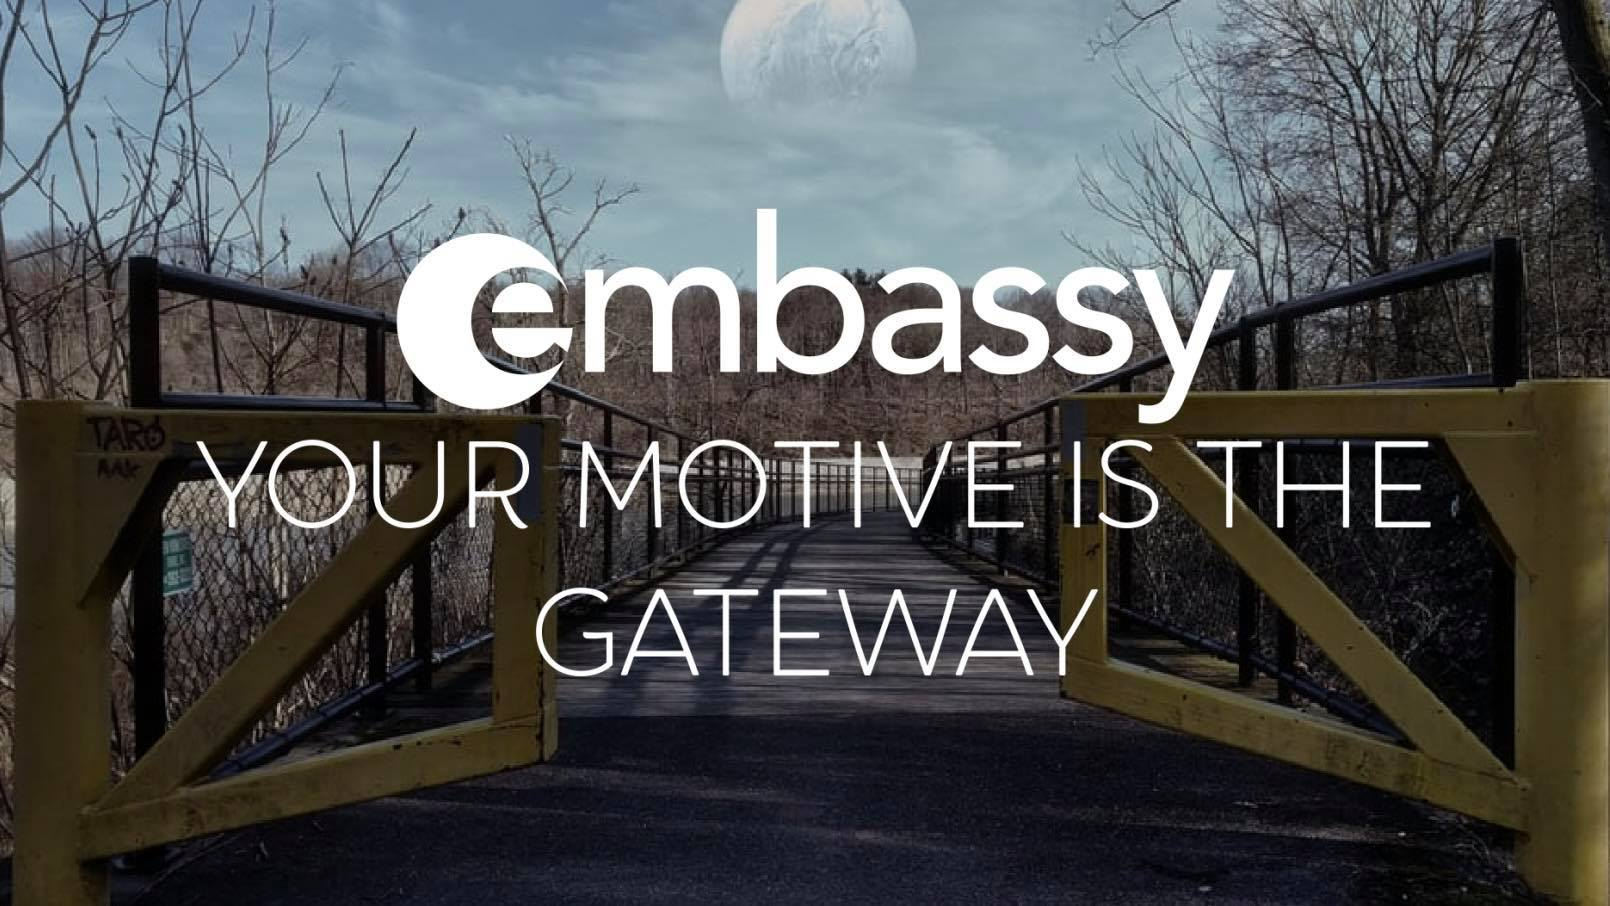 Your Motive is the Gateway